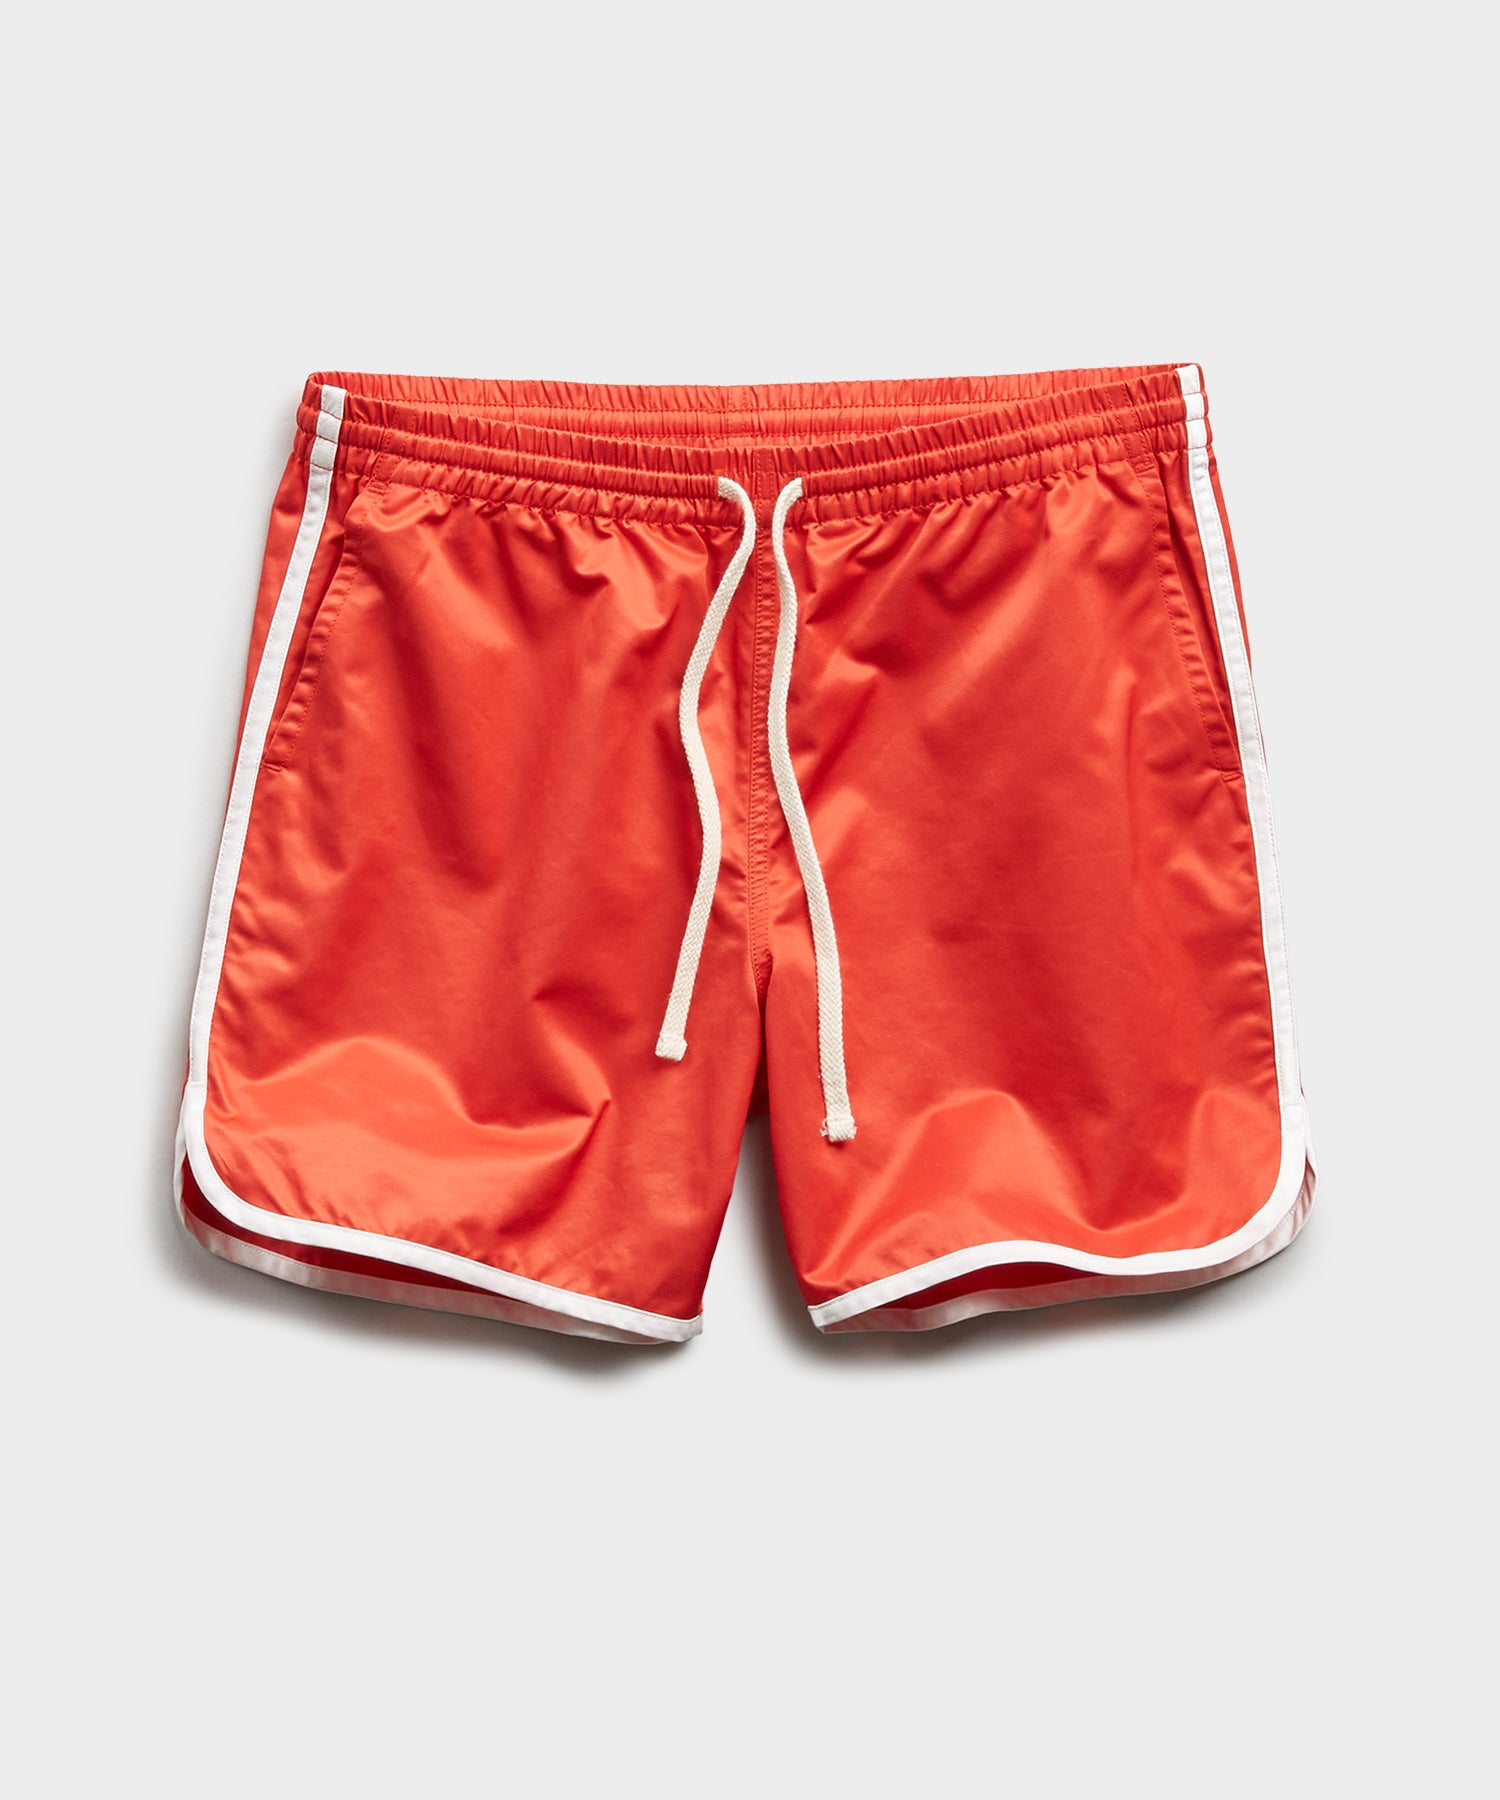 Satin Dolphin Short in Red